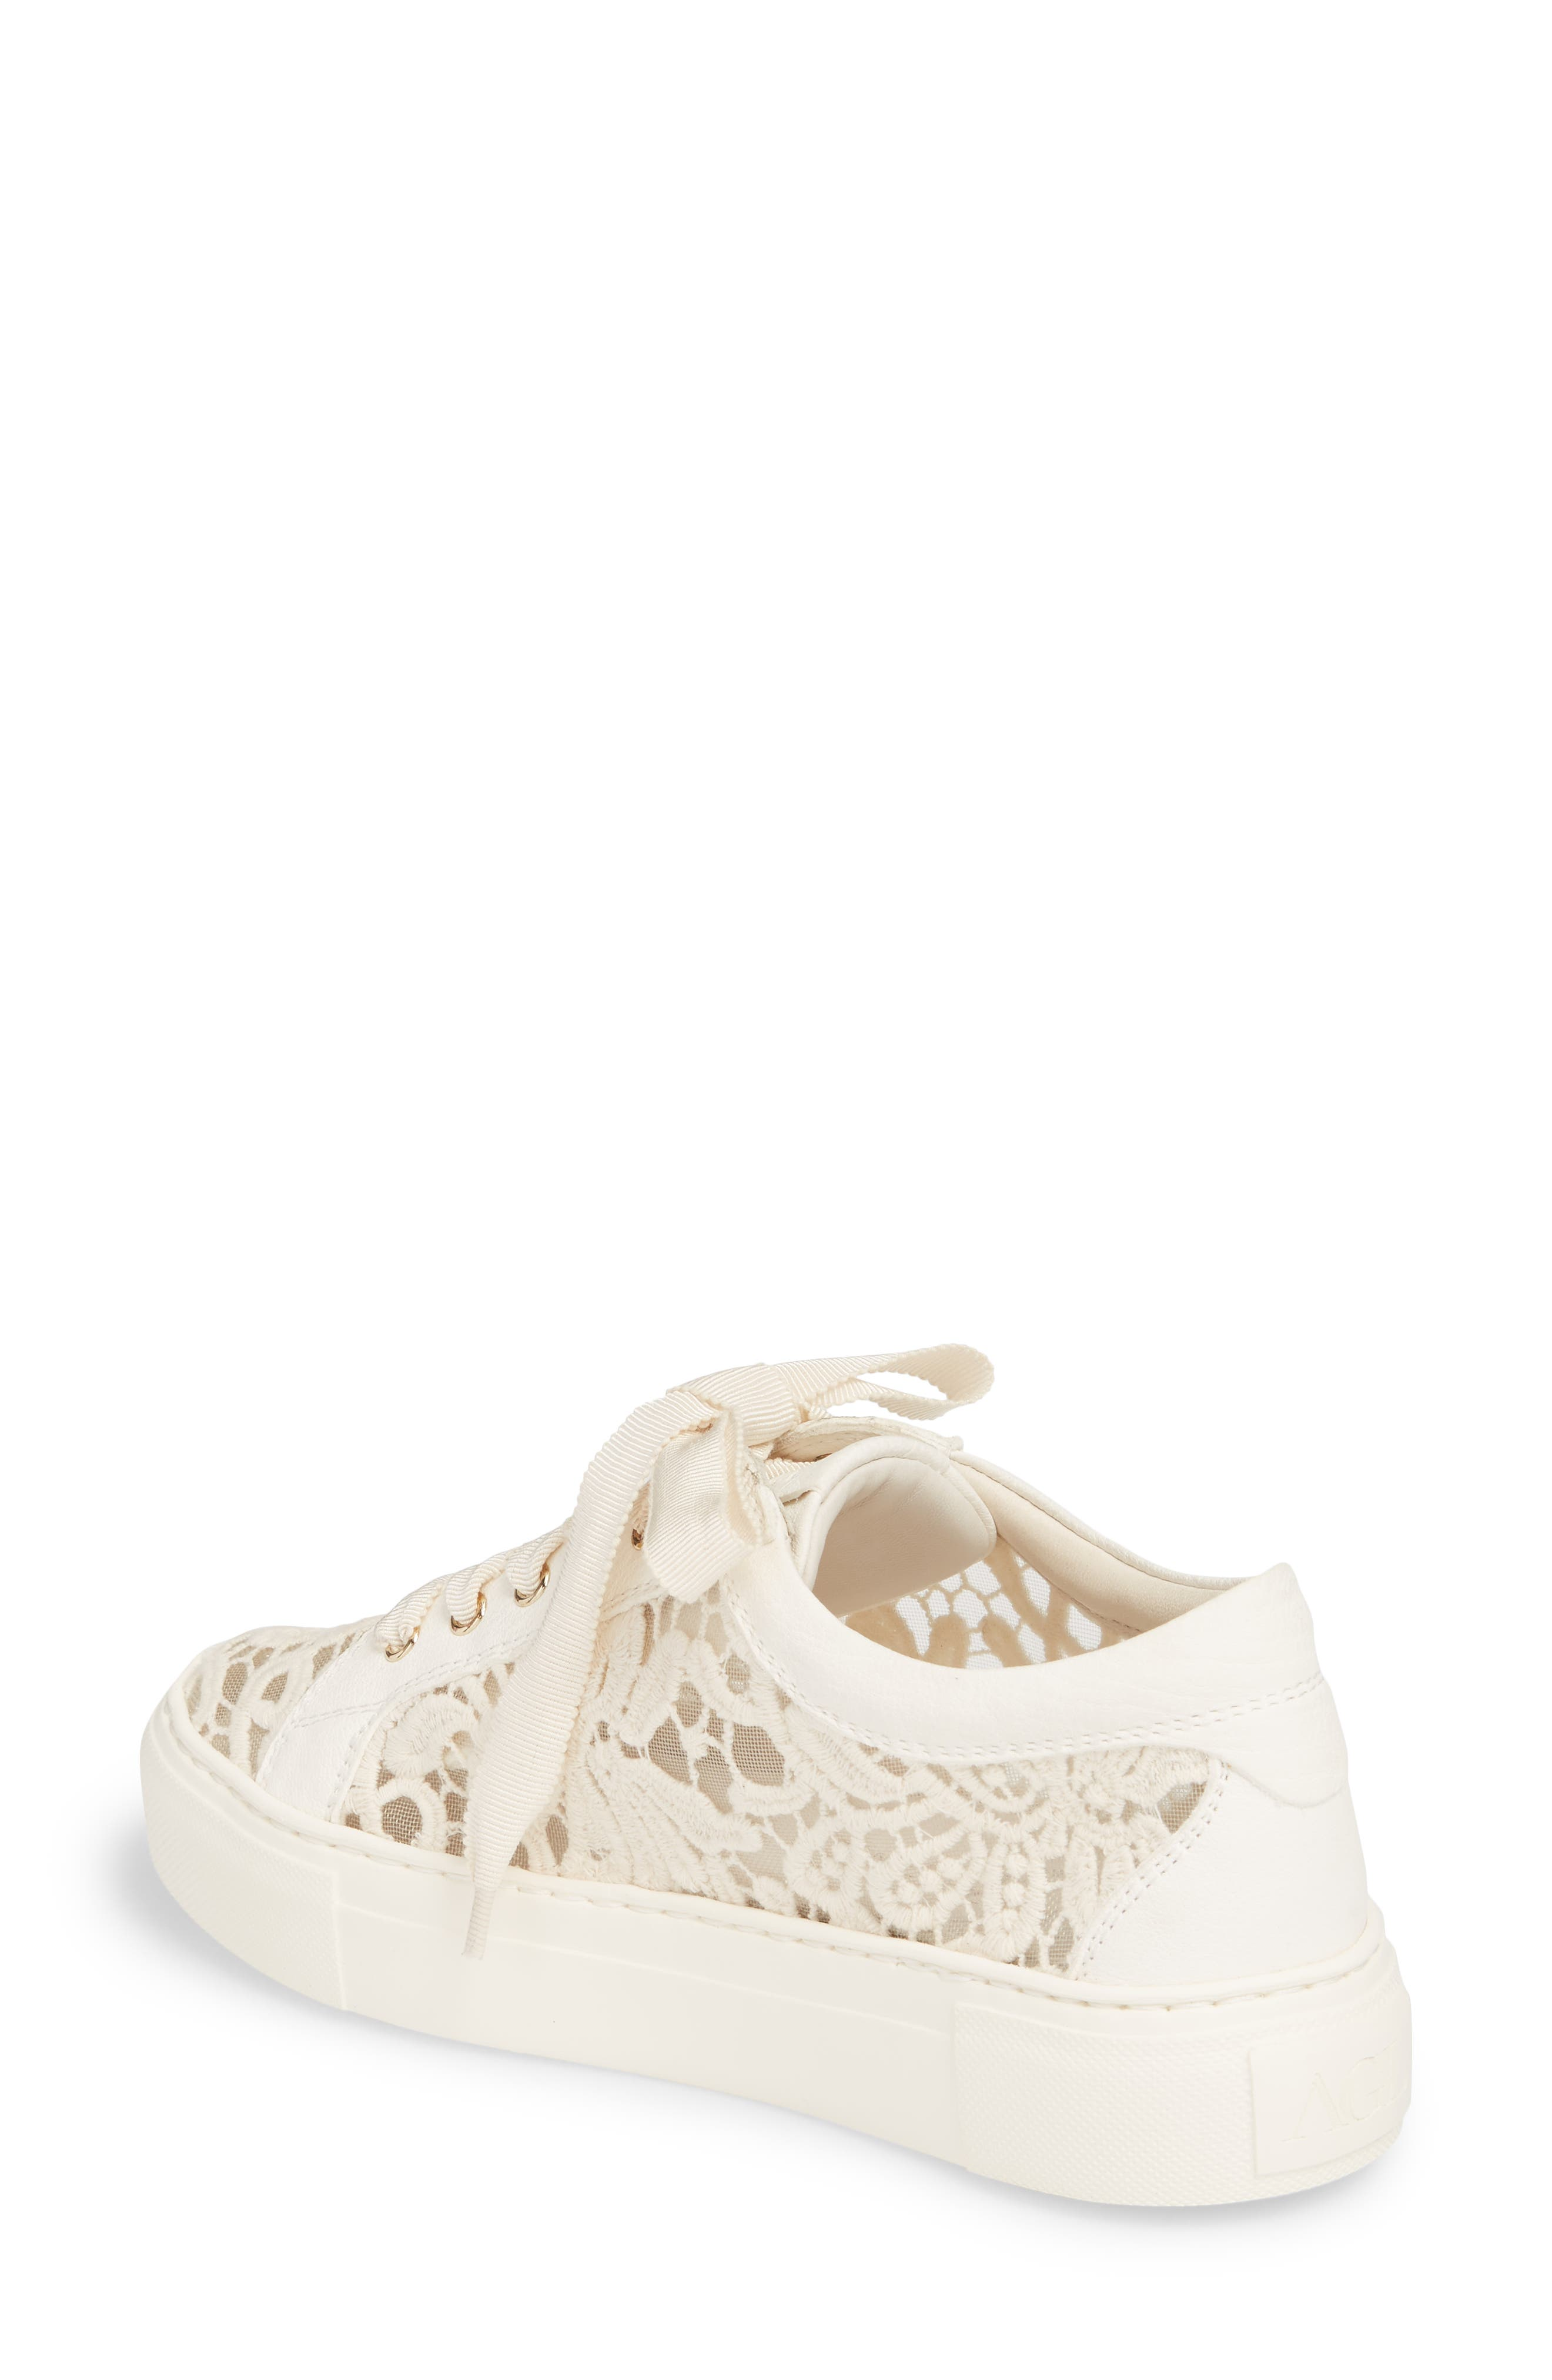 Embroidered Lace Sneaker,                             Alternate thumbnail 2, color,                             101